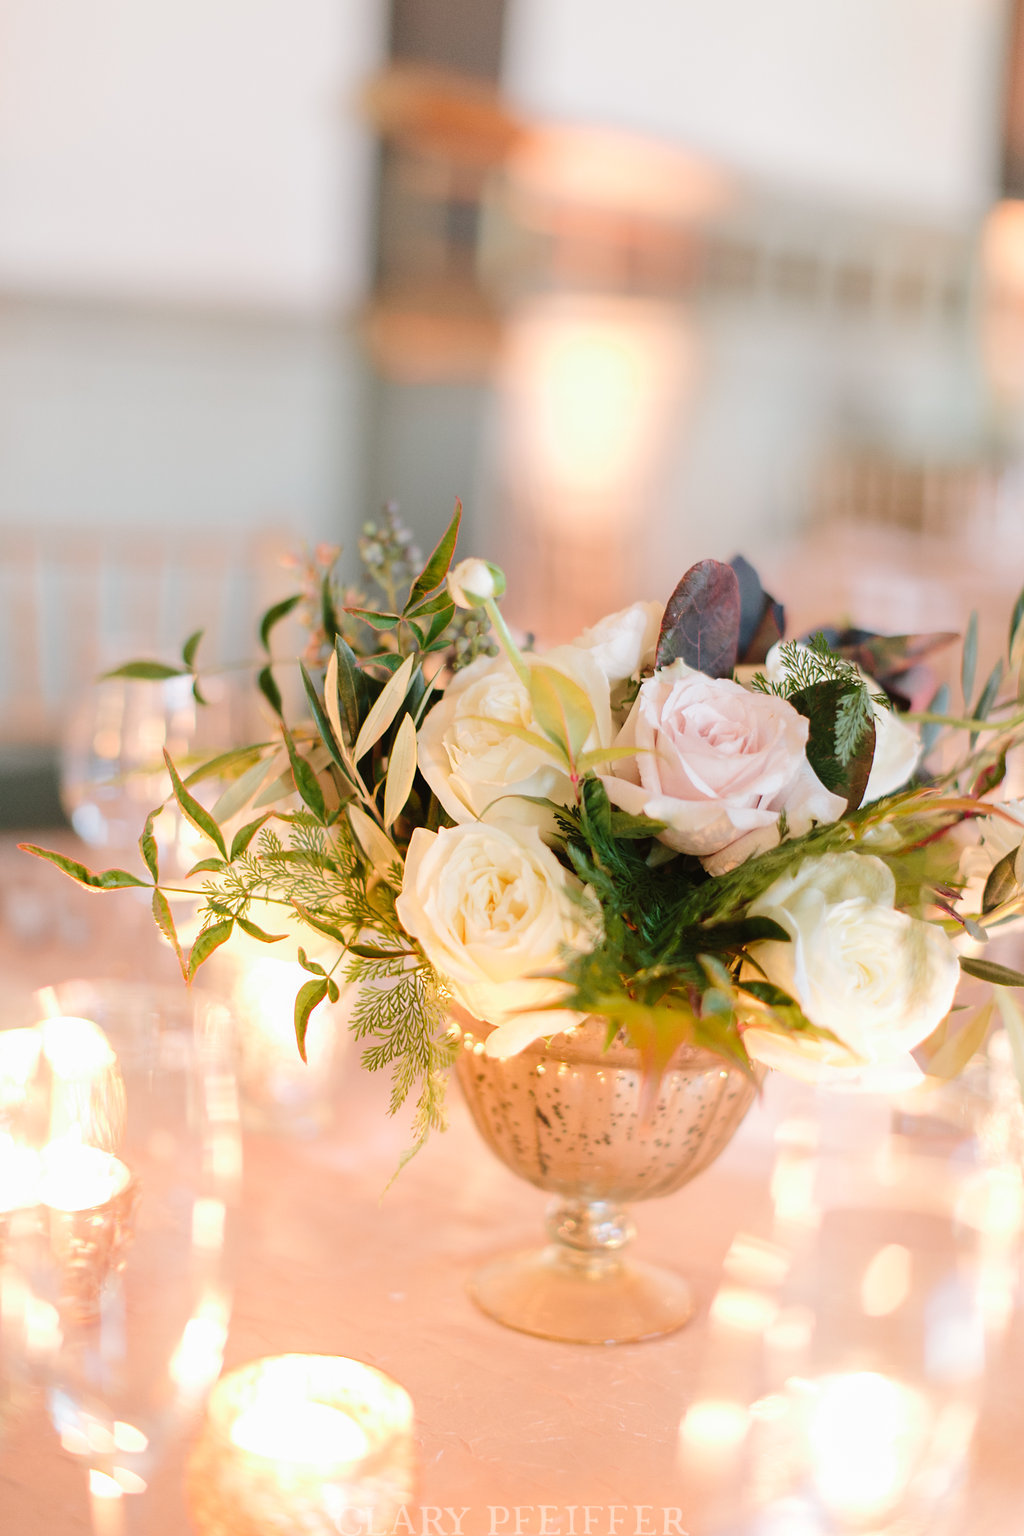 Flowers by Fleur Inc, photo by Clary Pfeiffer Photography, Planning by Estera Events